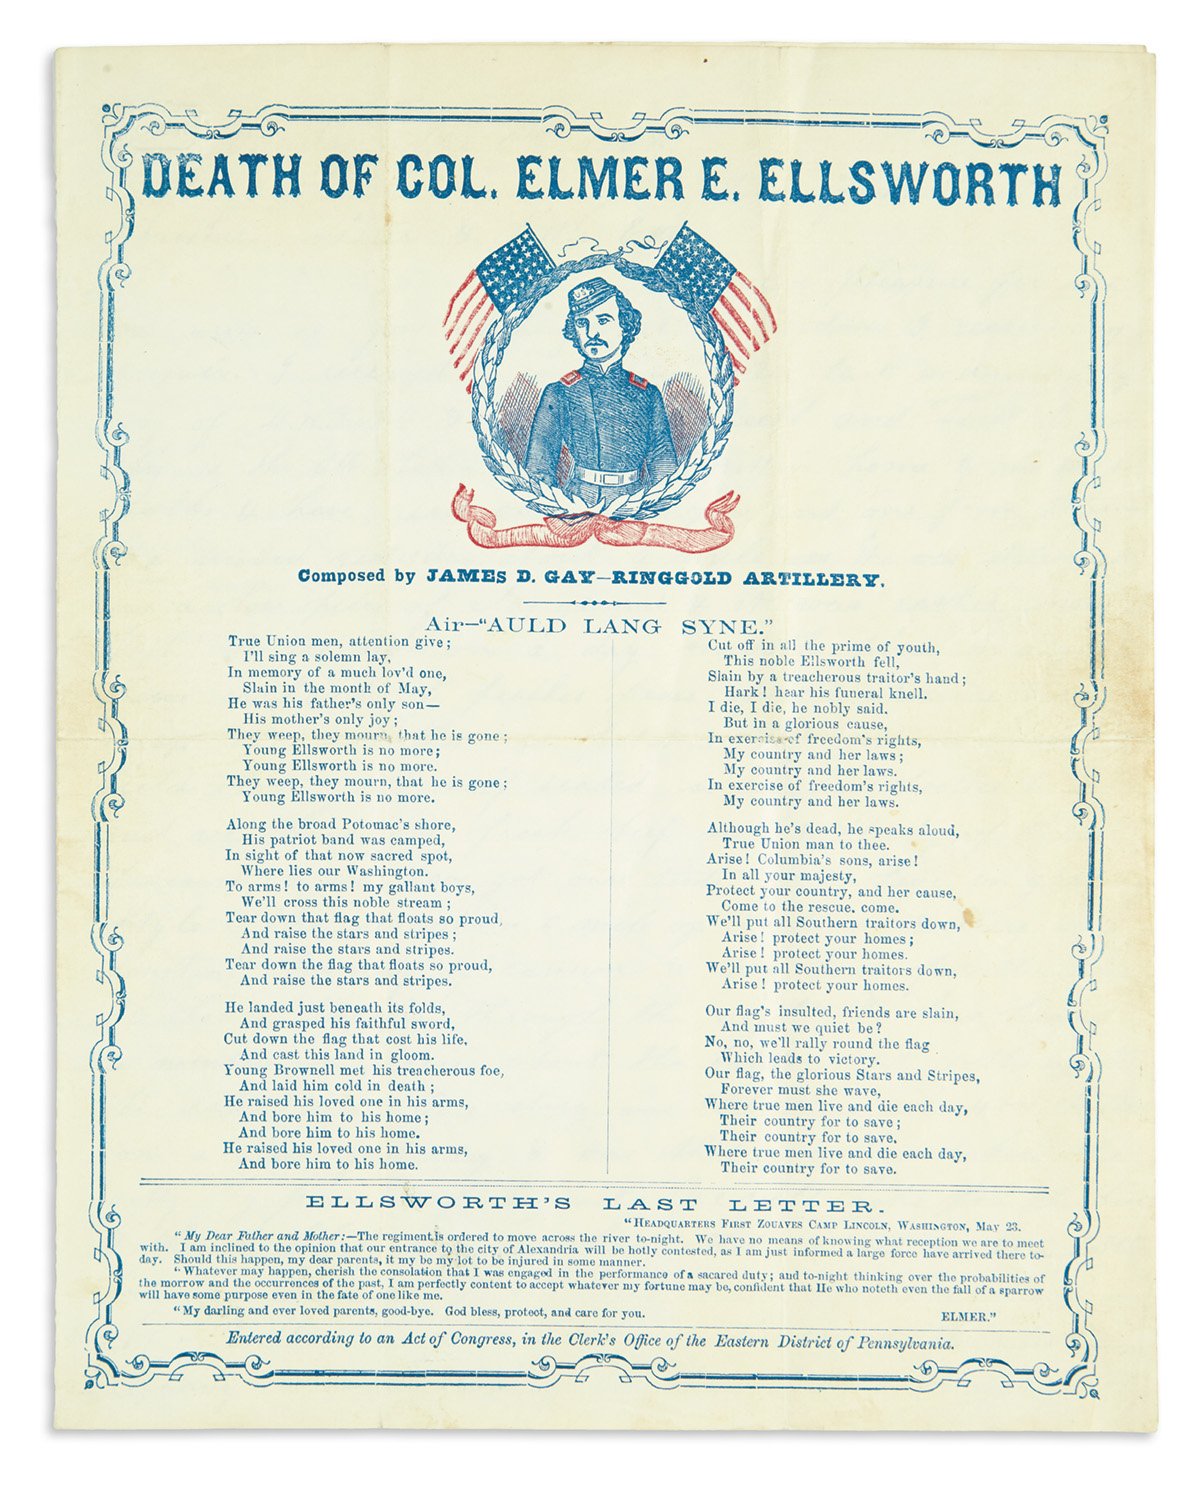 (CIVIL WAR.) Group of ephemera relating to Colonel Elmer E. Ellsworth, the first to die in the war.